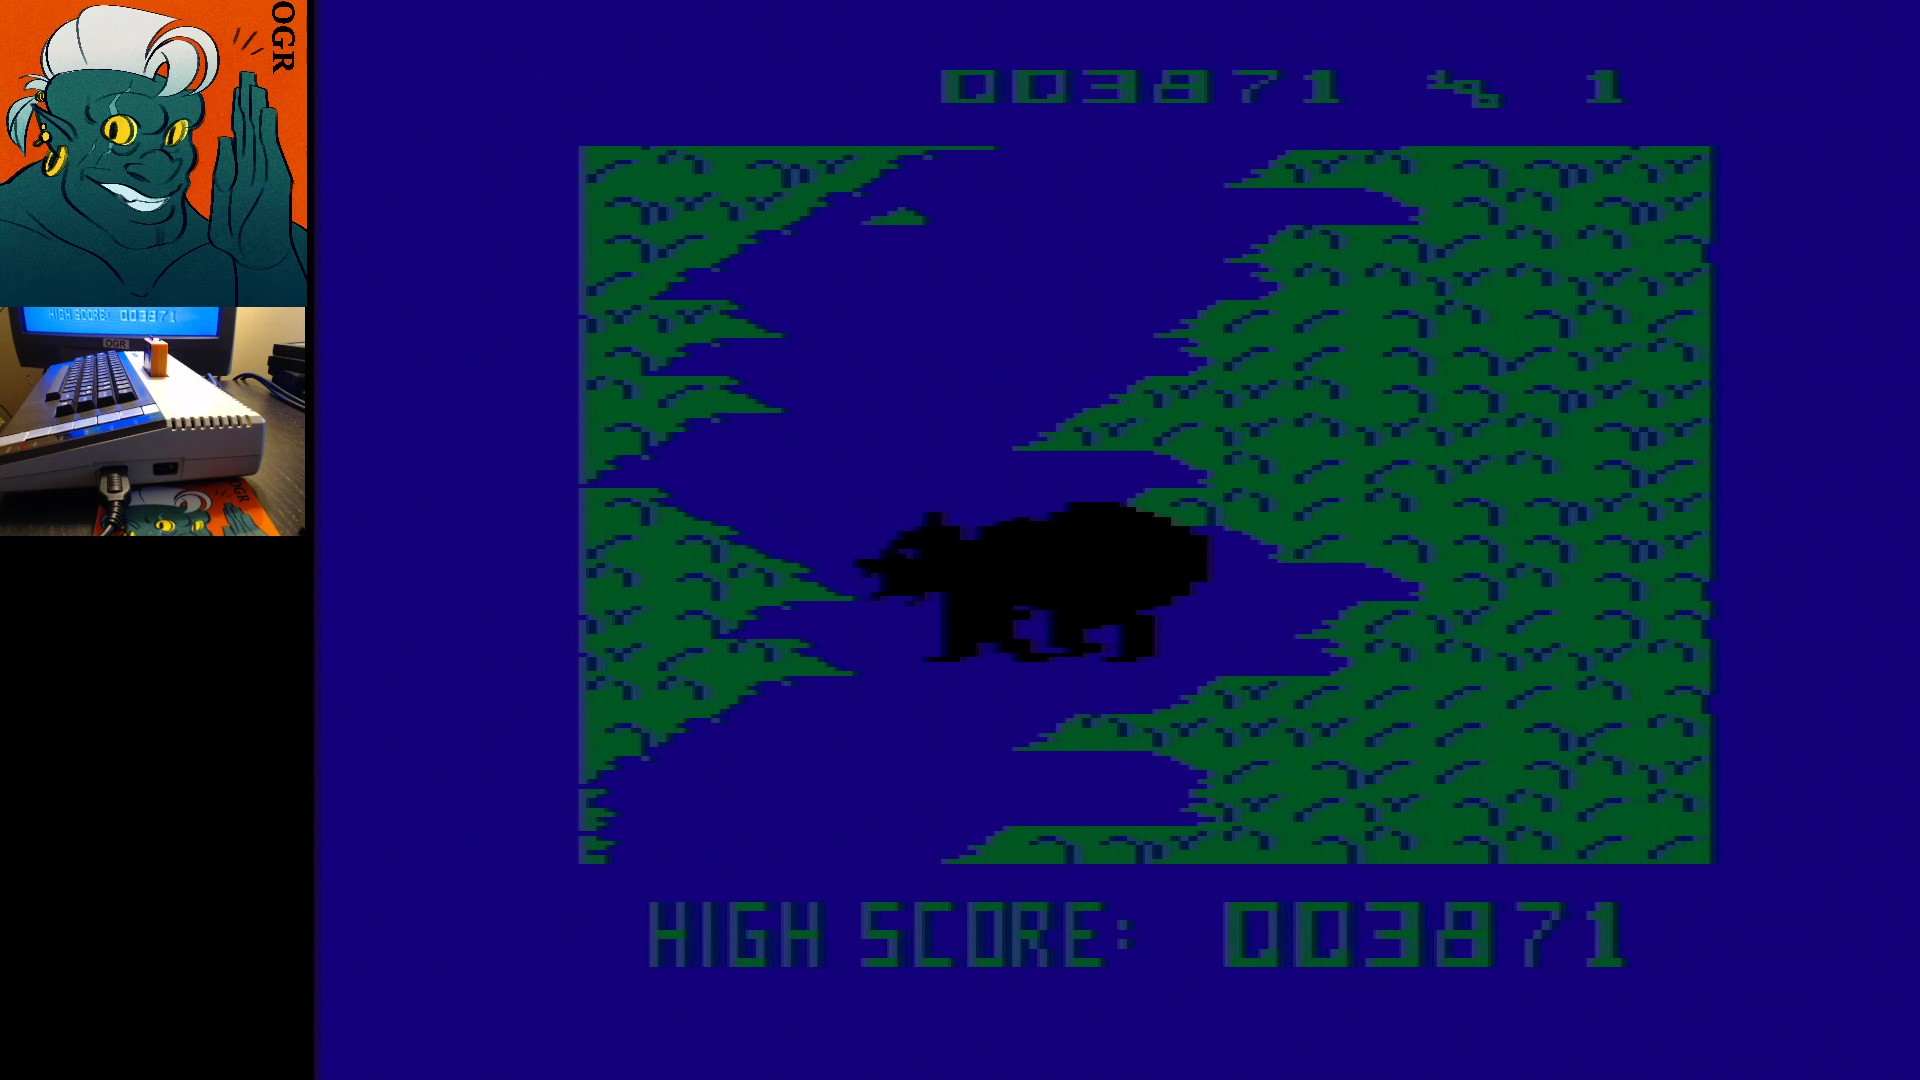 AwesomeOgre: Salmon Run (Atari 400/800/XL/XE) 3,871 points on 2020-01-16 13:46:09